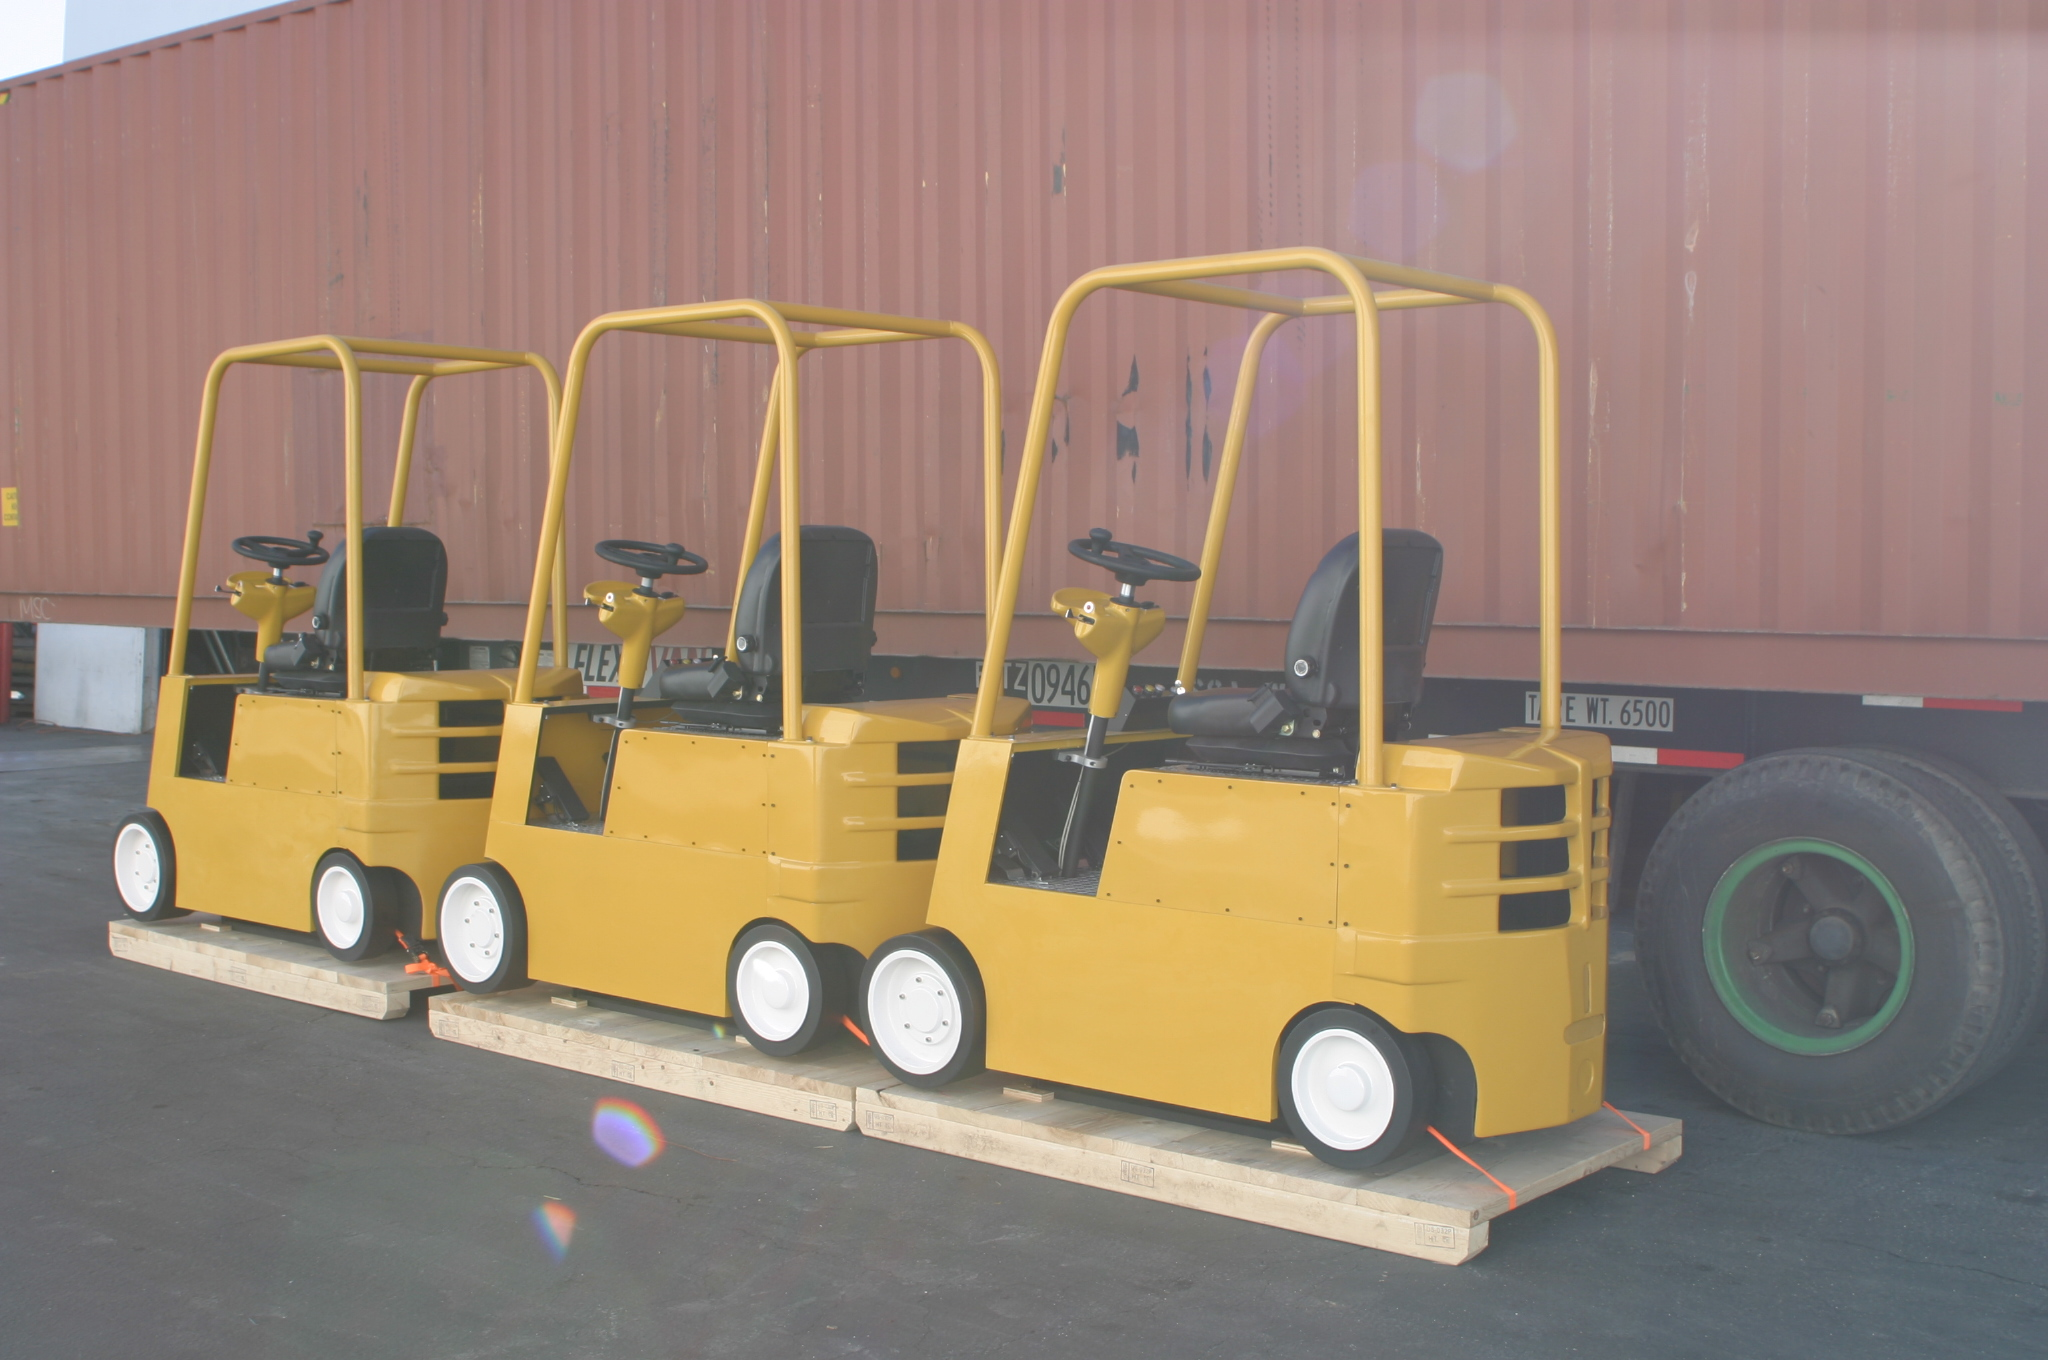 Cab Simulators Awaiting Shipment